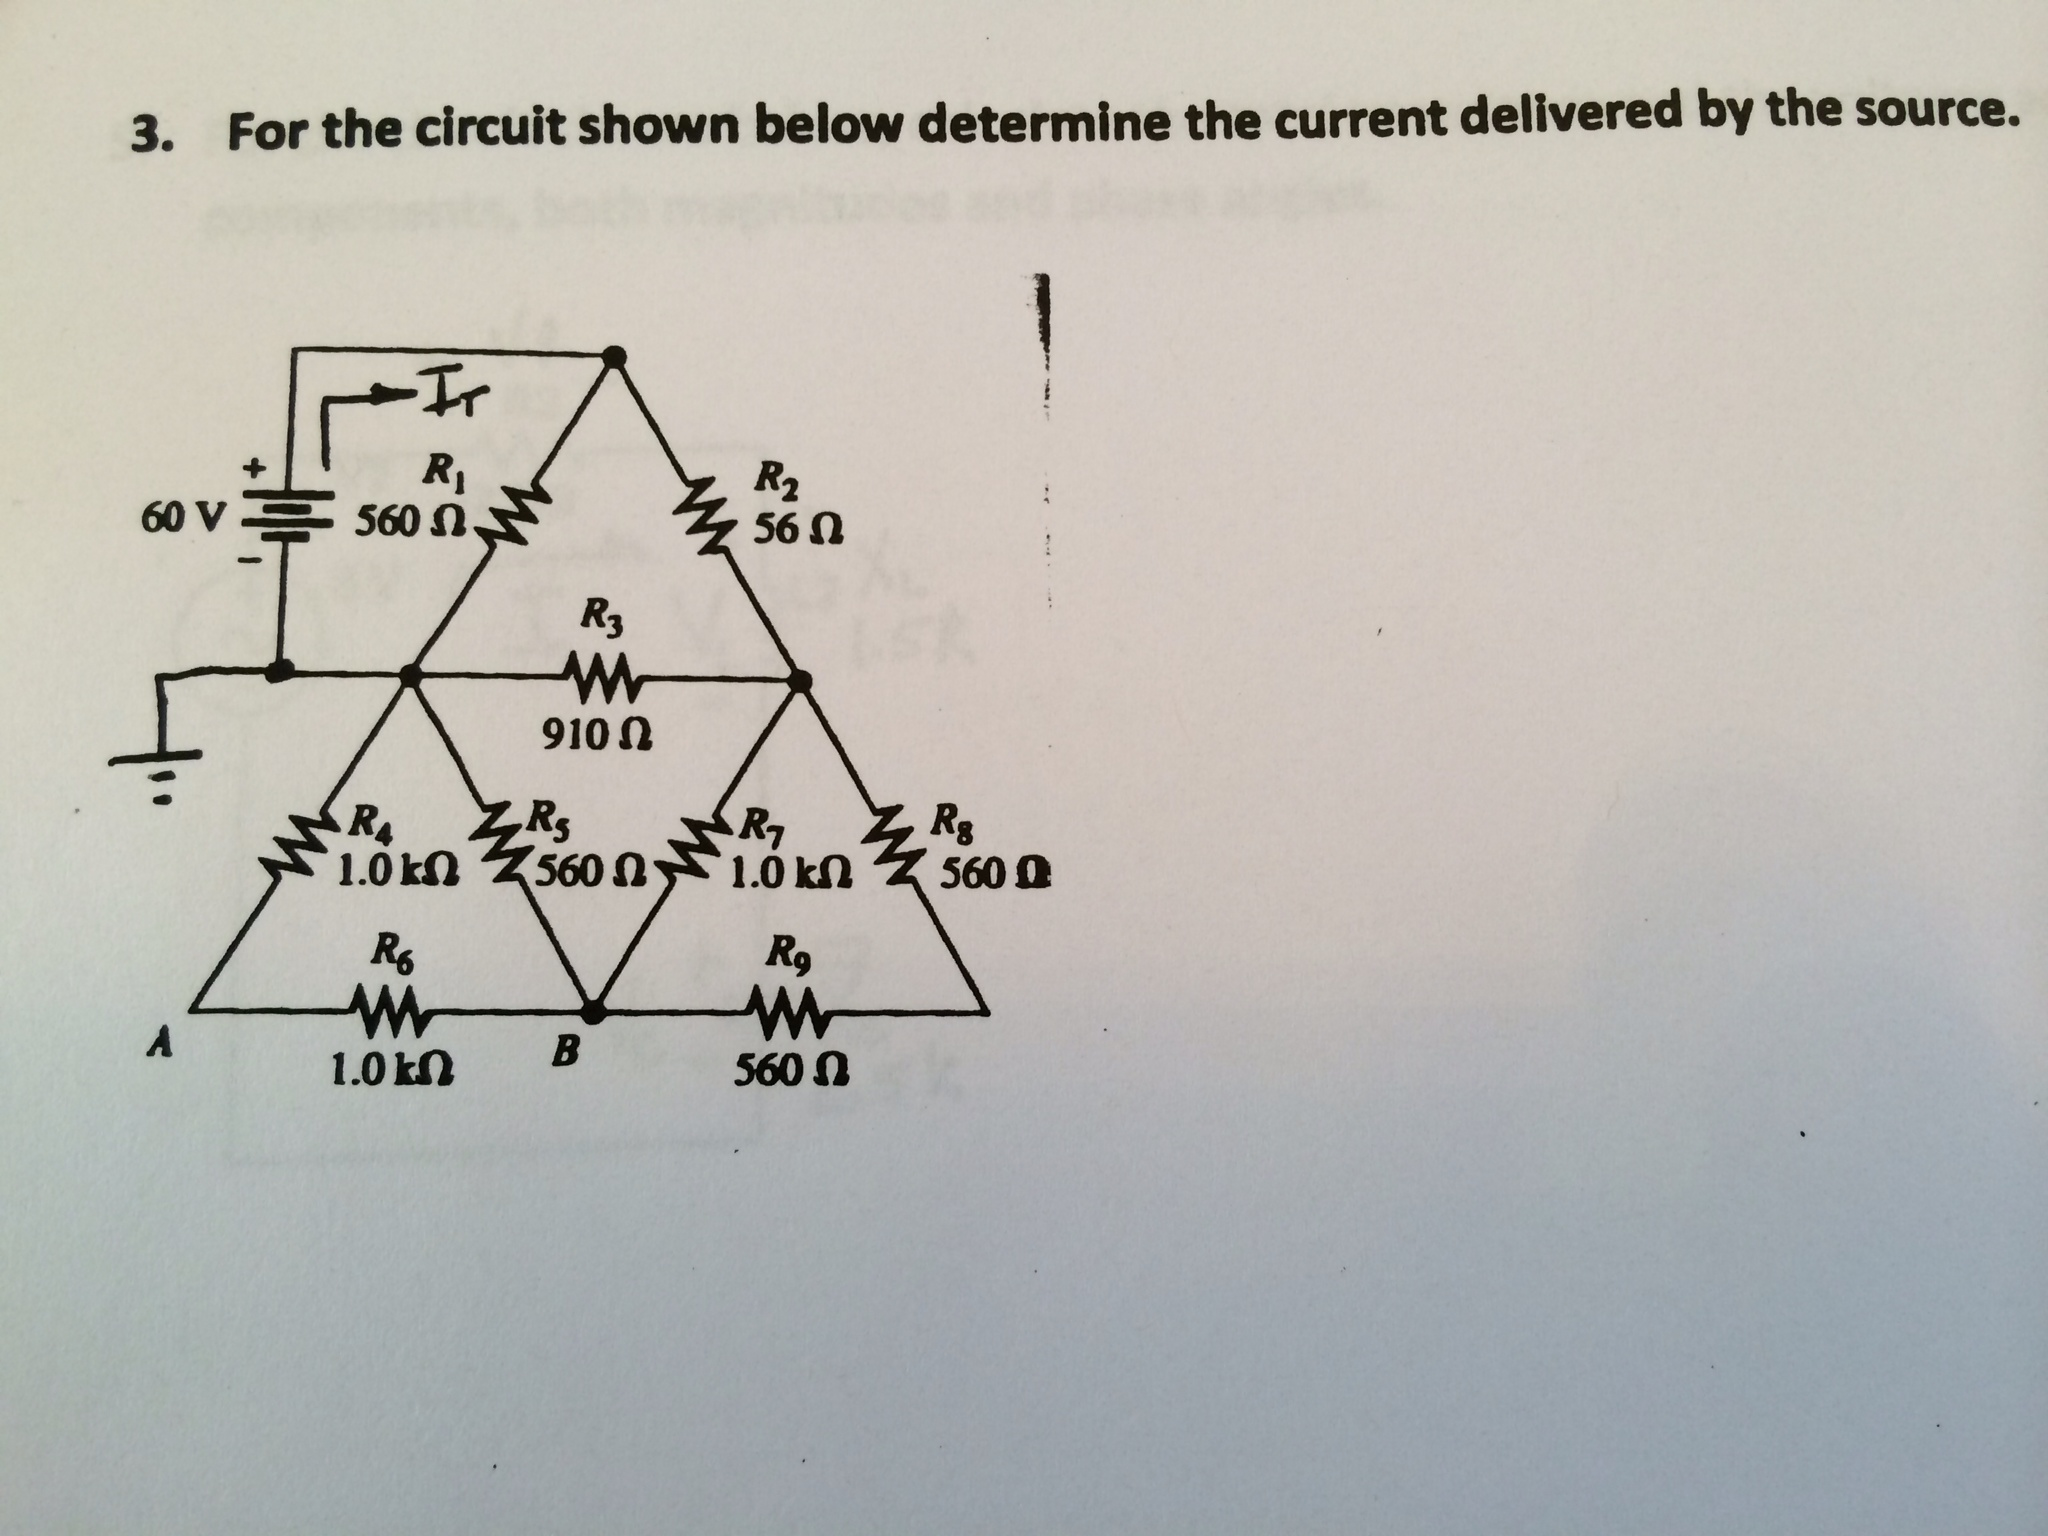 For the circuit shown below determine the current